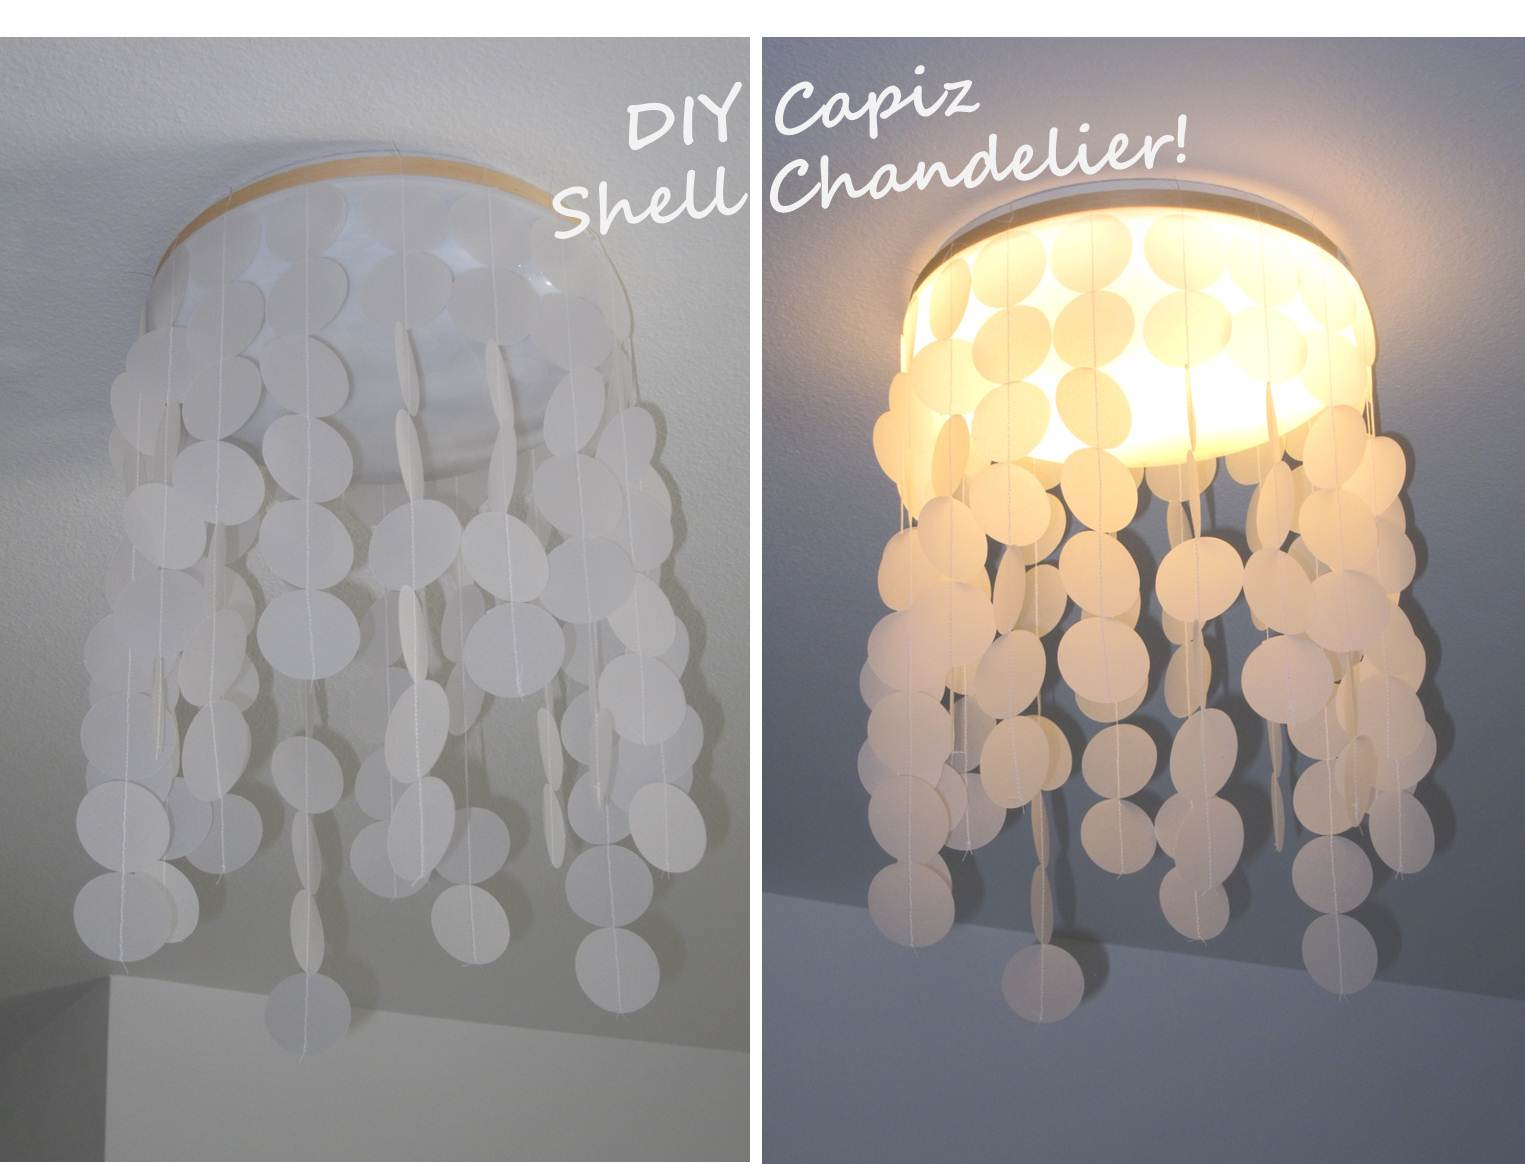 Inspired whims designer look alike diy capiz shell for Shell diy